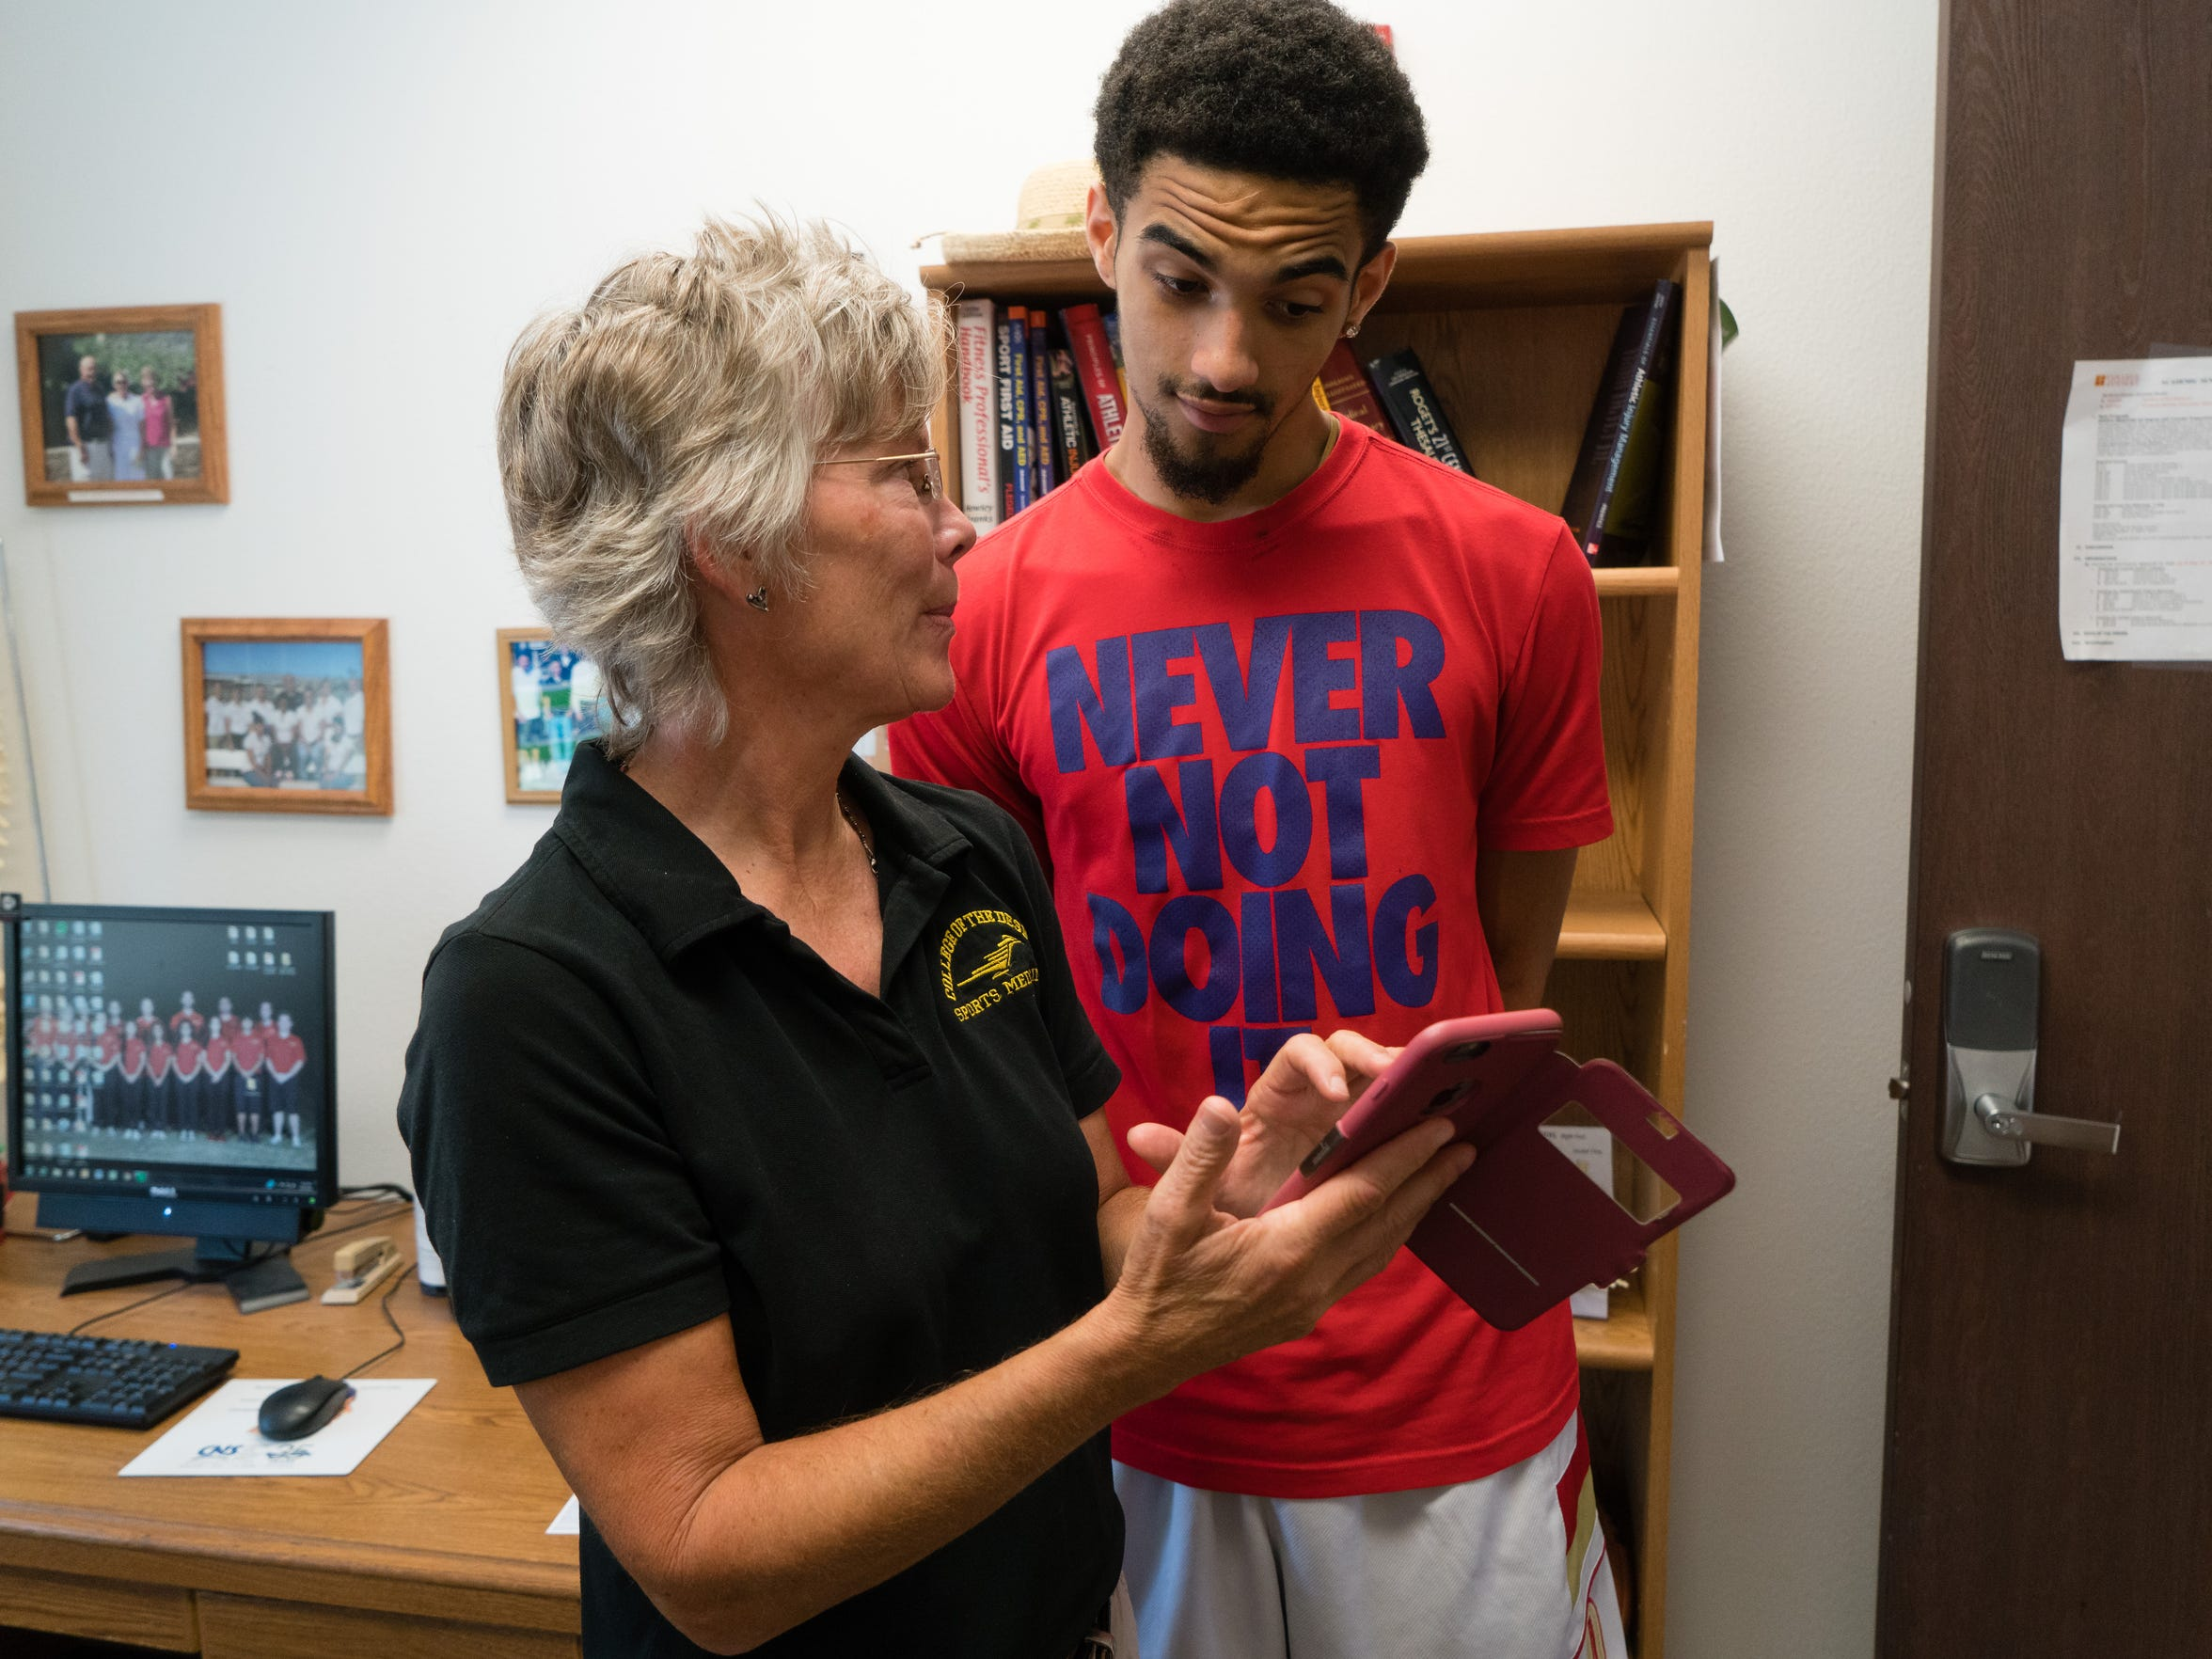 Patty Curtiss, Athletic Training Lead at College of